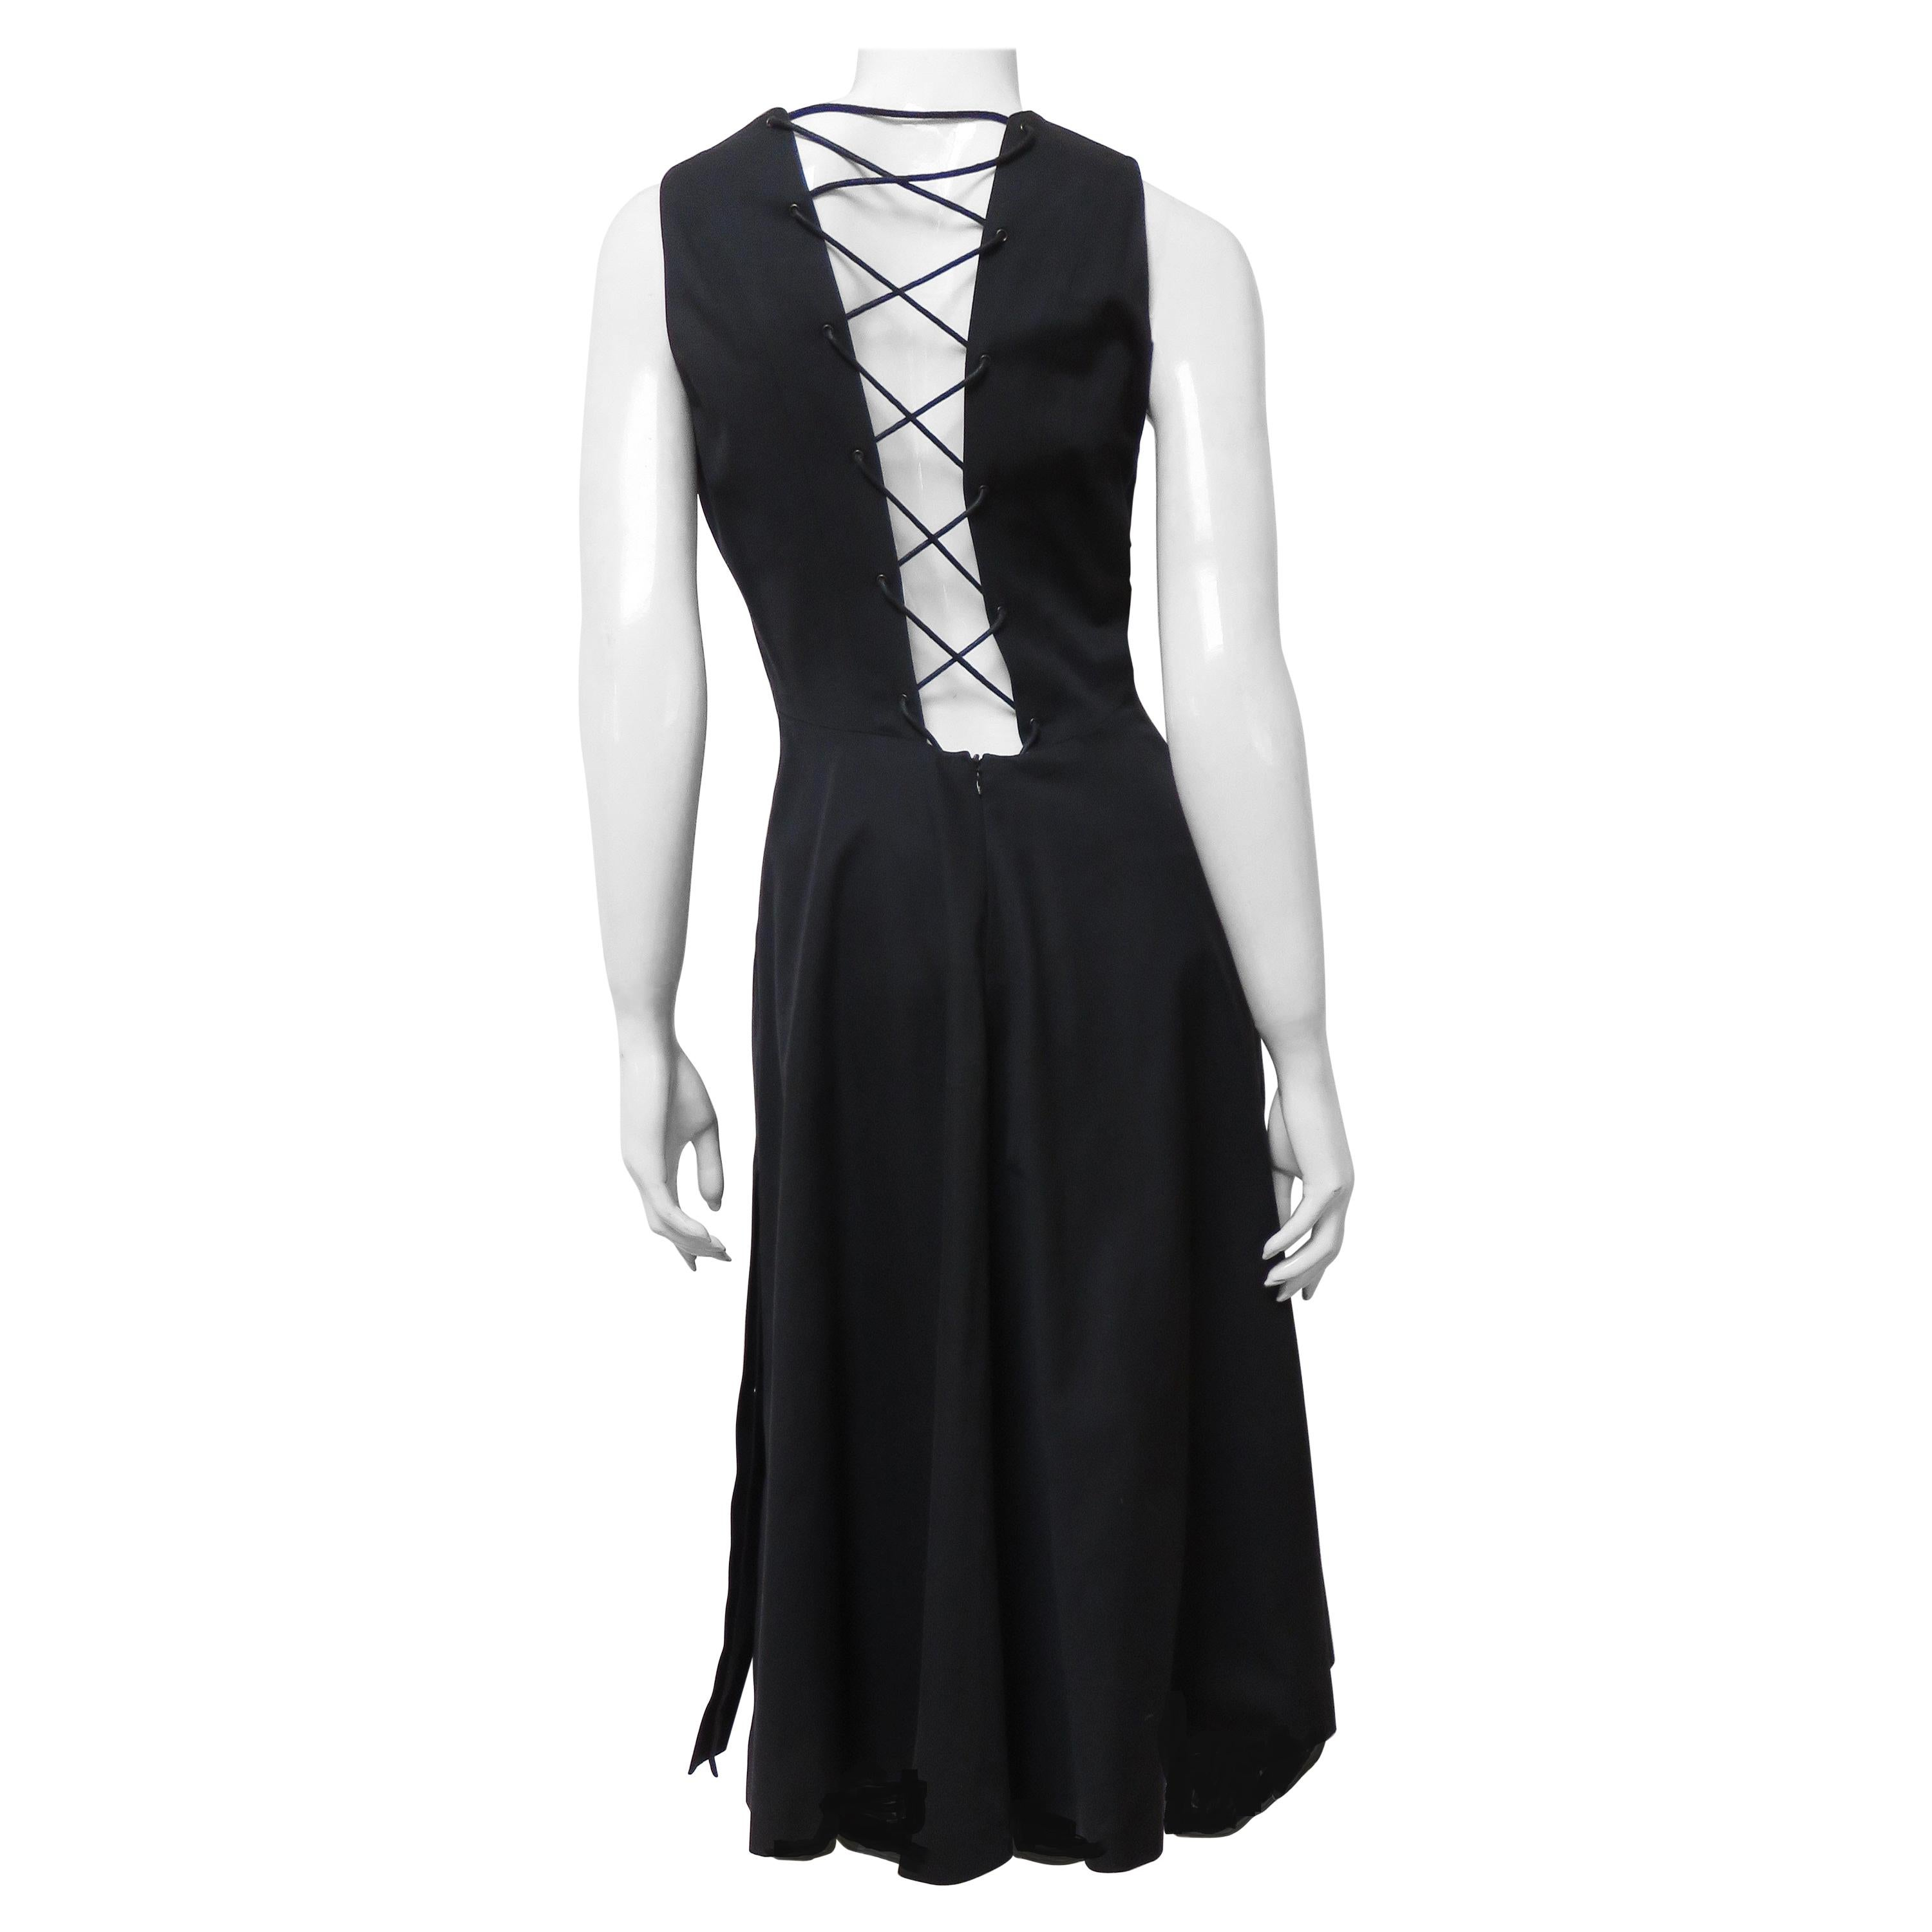 Hermes 1970s Dress with Lace up Back